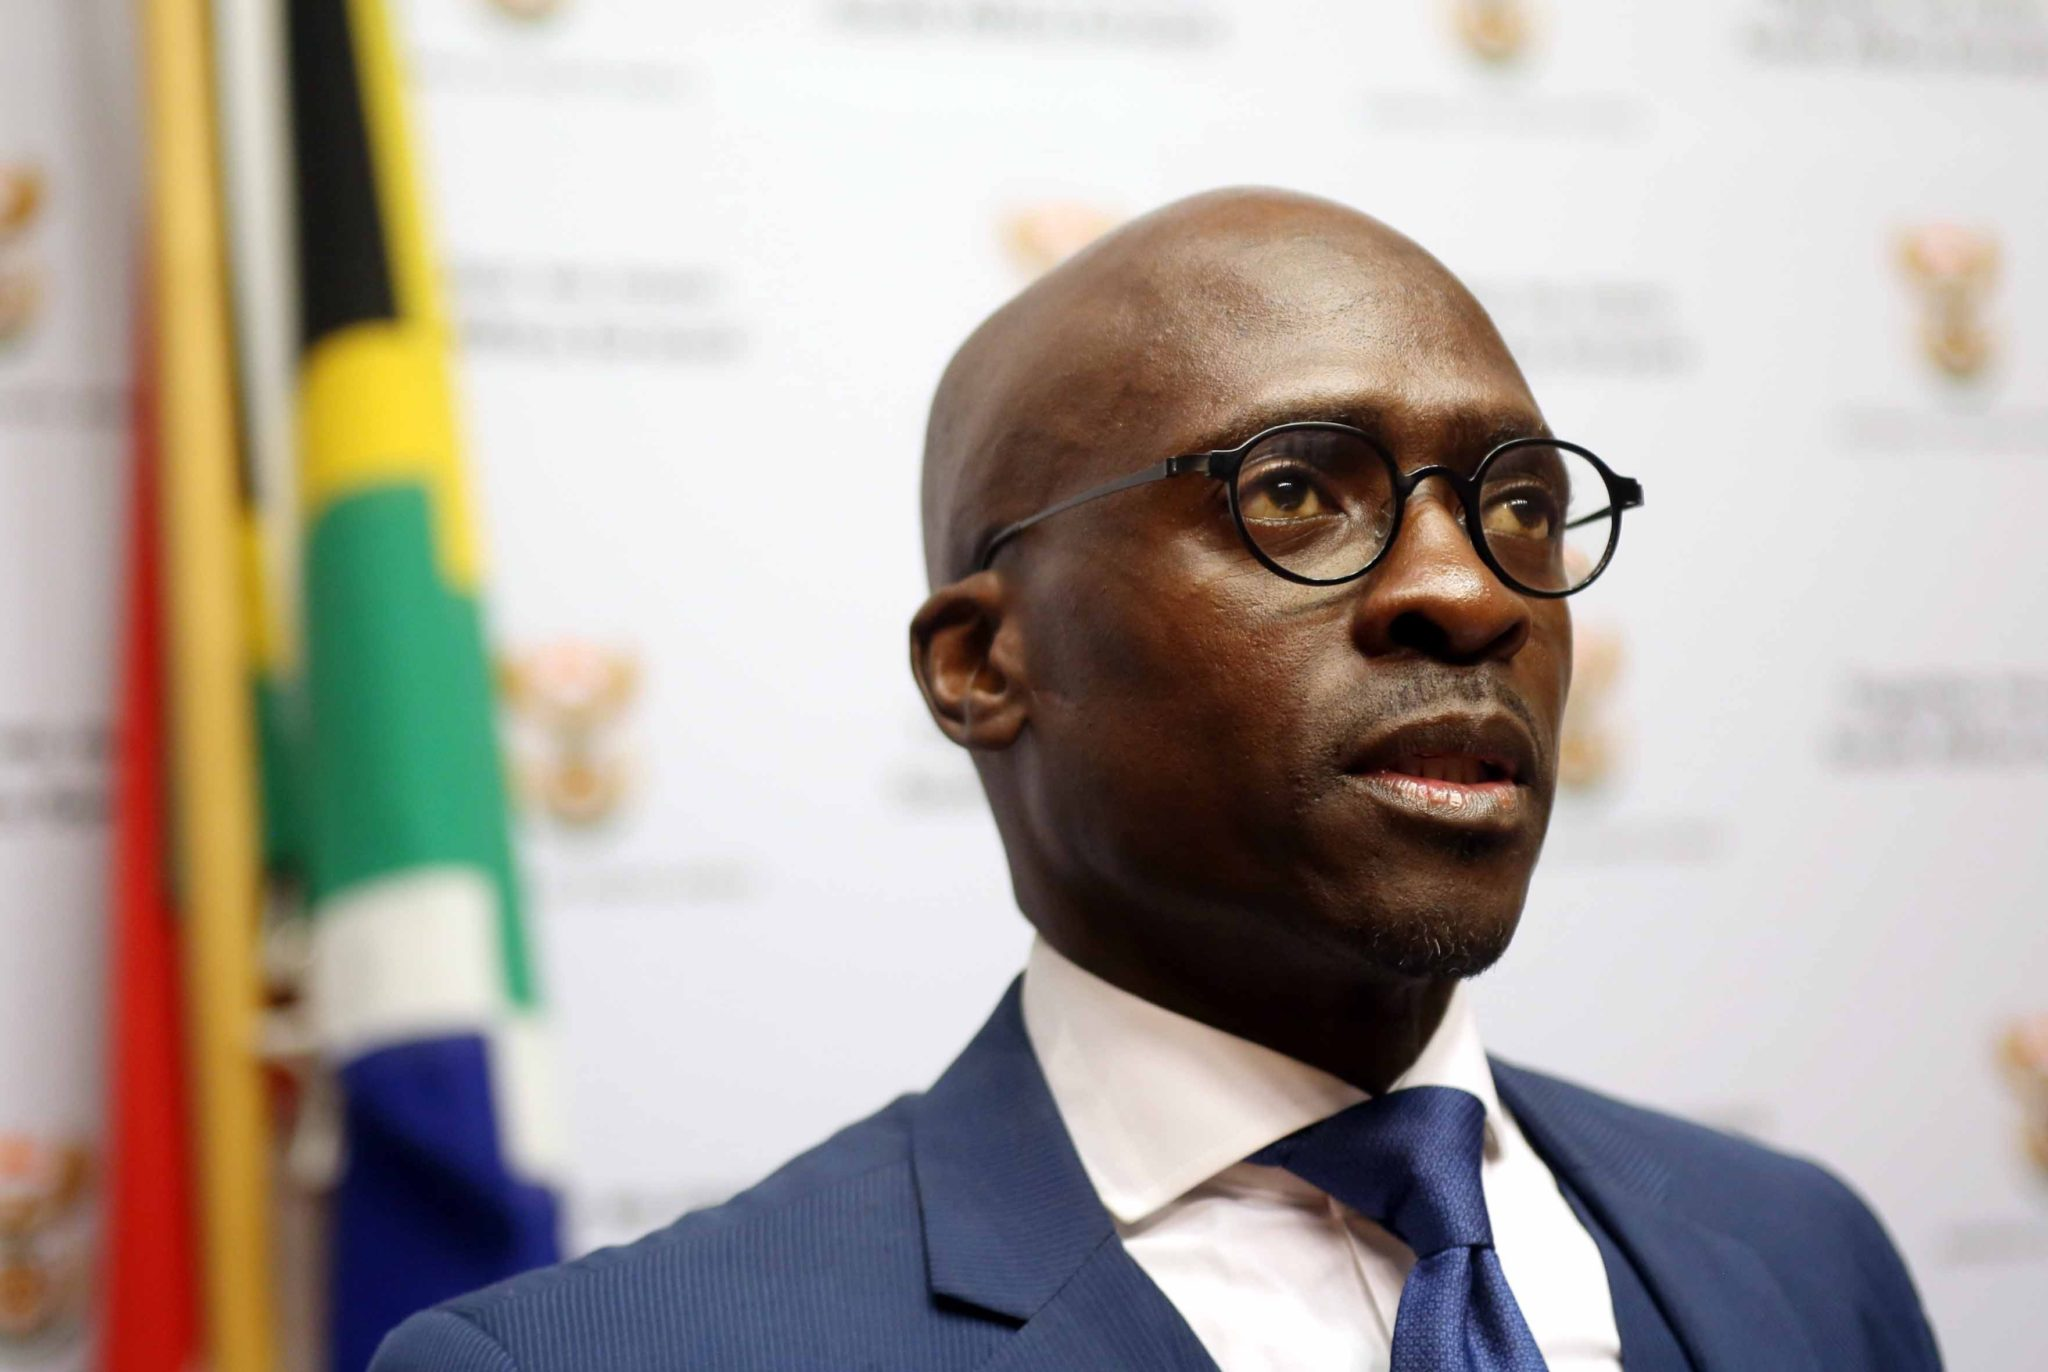 Gigaba resignation cop-out to avoid Ethics Committee and ensure benefits